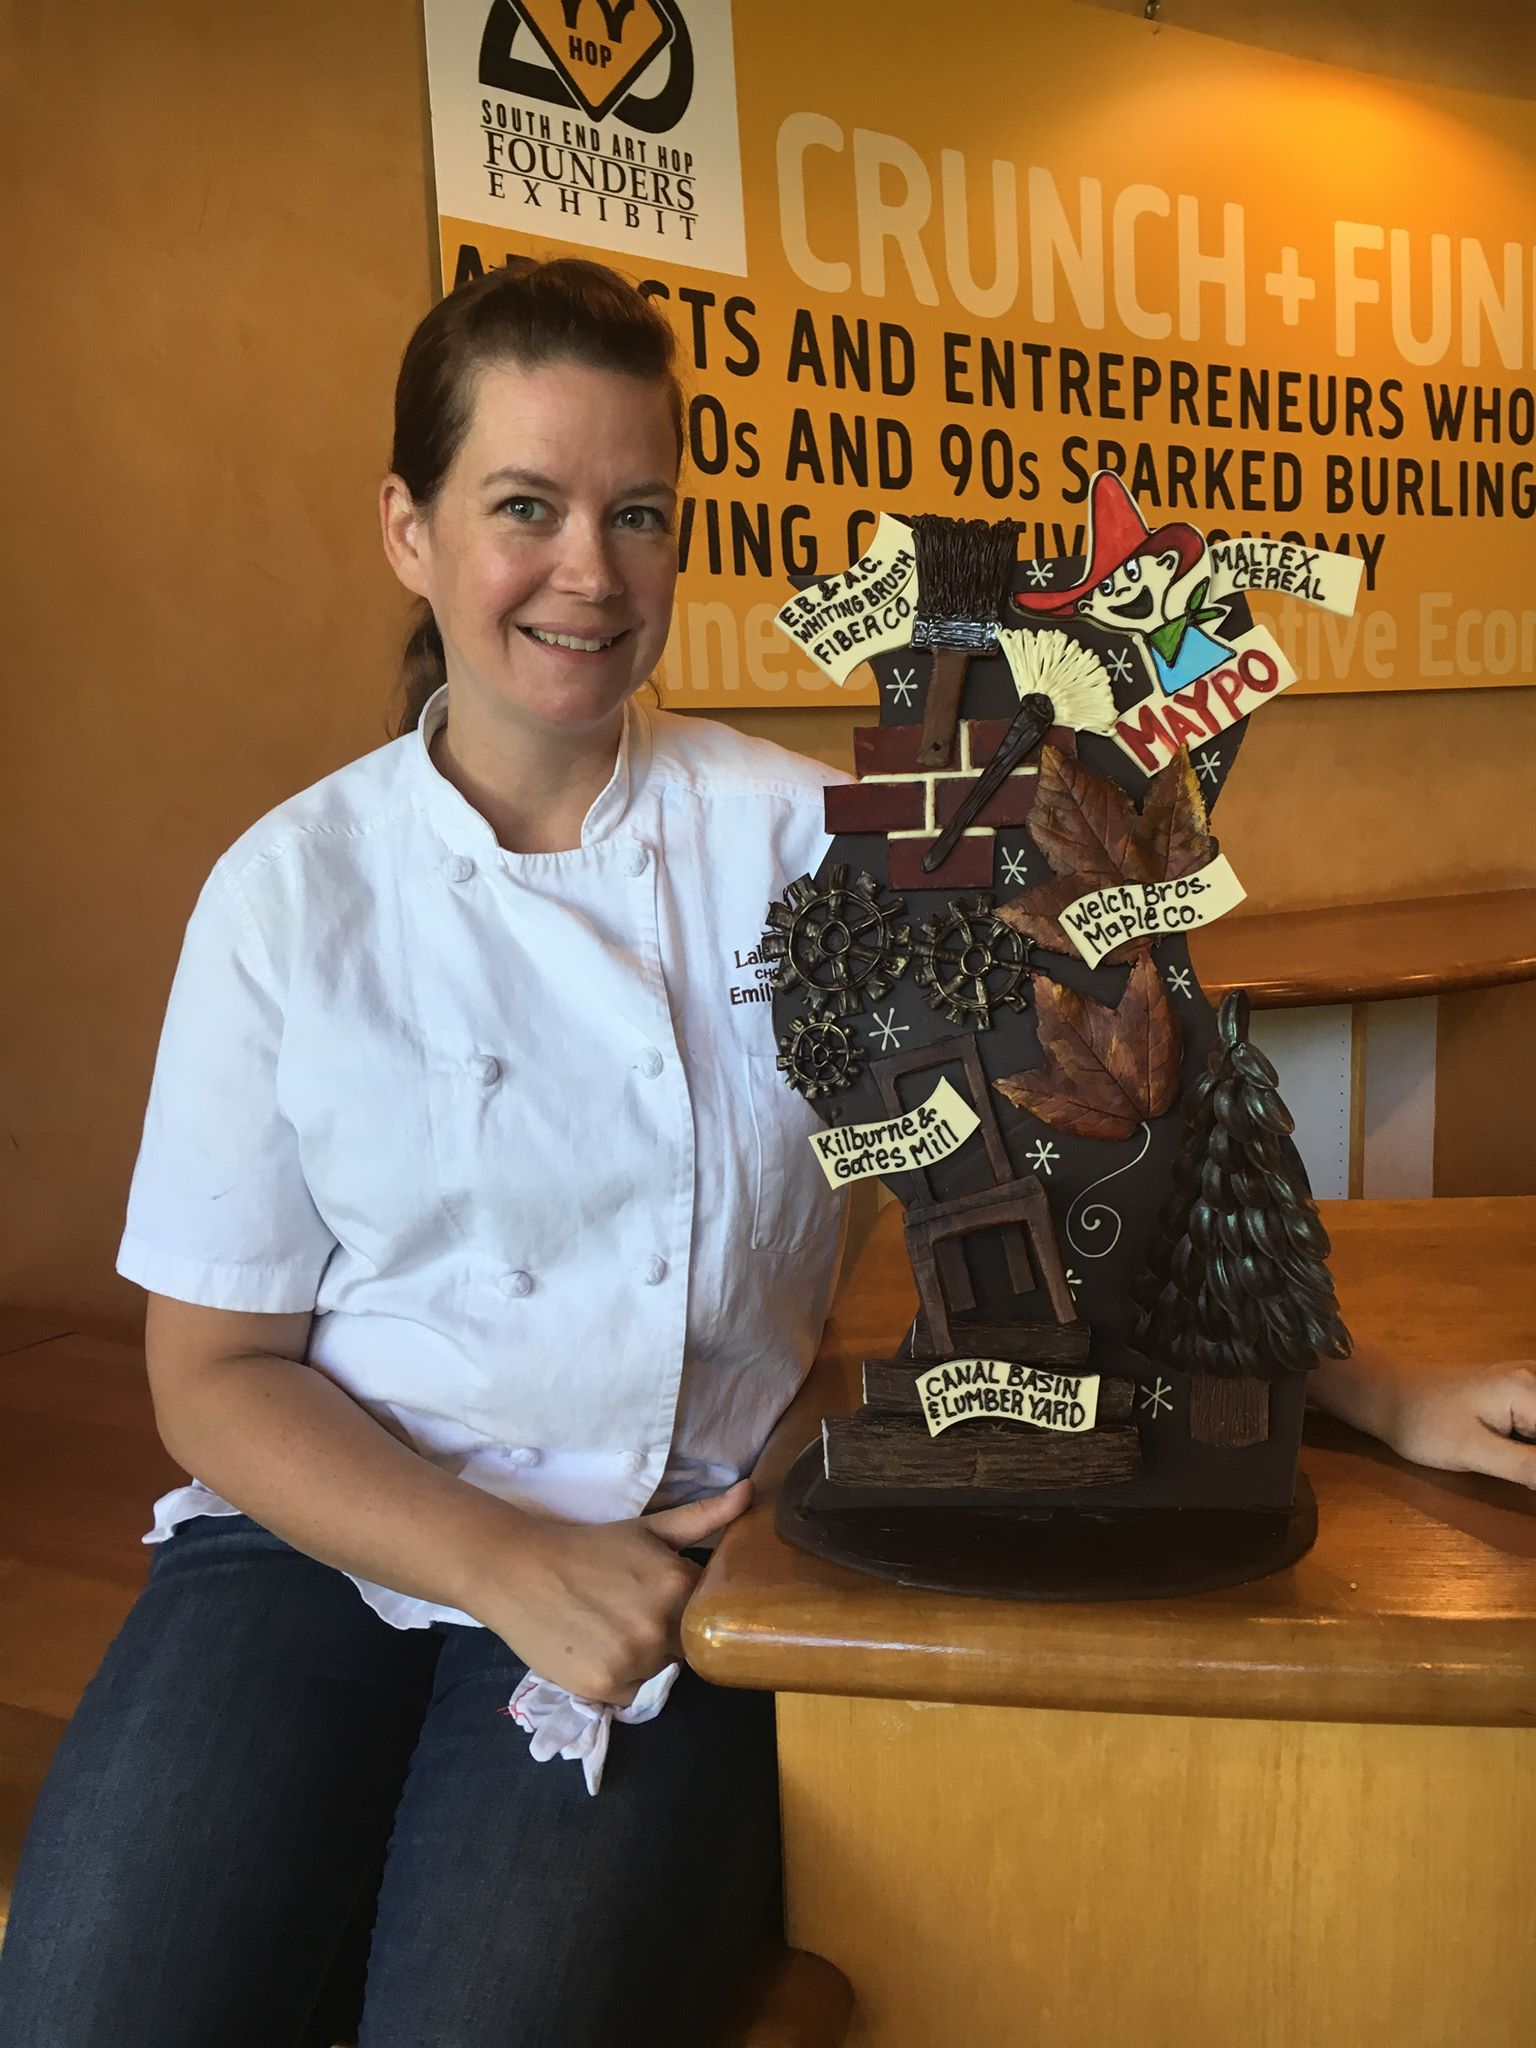 Have you ever wondered how  Chocolate Sculptress , Emily McCracken creates her incredible works of chocolate art? Join Emily at our Pine Street store on Saturday, October 21st from 2-3 for a FREE Chocolate Sculpture Demo! Watch and learn as Emily shares tips and techniques for crafting a beautiful sculpture to celebrate the fall season made entirely out of chocolate!